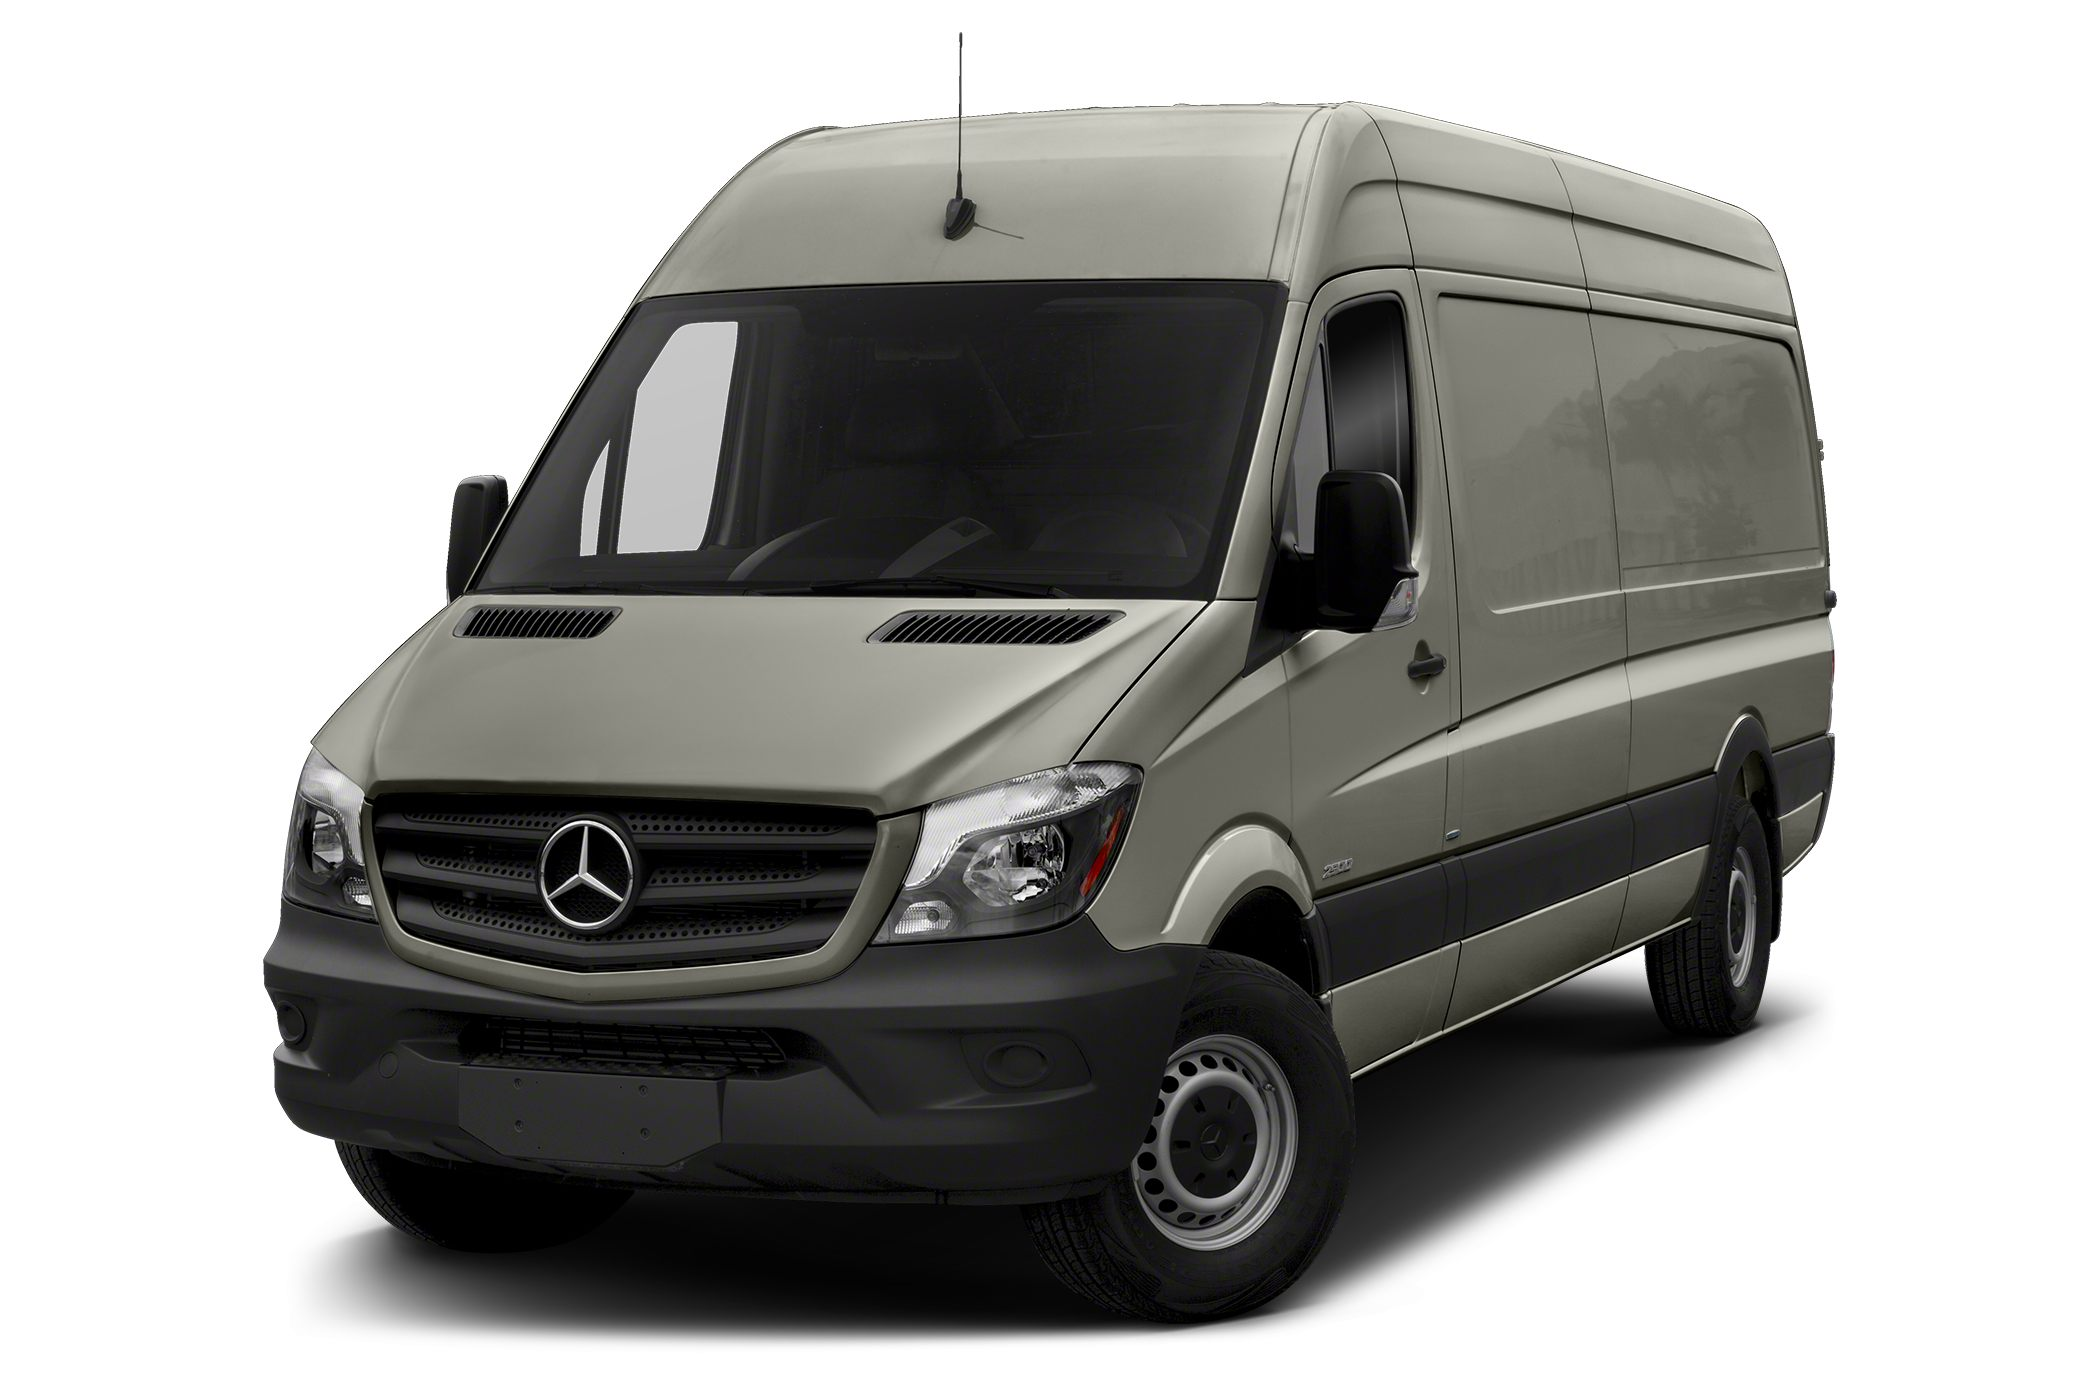 2018 Mercedes Benz Sprinter 2500 High Roof V6 Cargo Van 170 In Wb 4wd Pictures